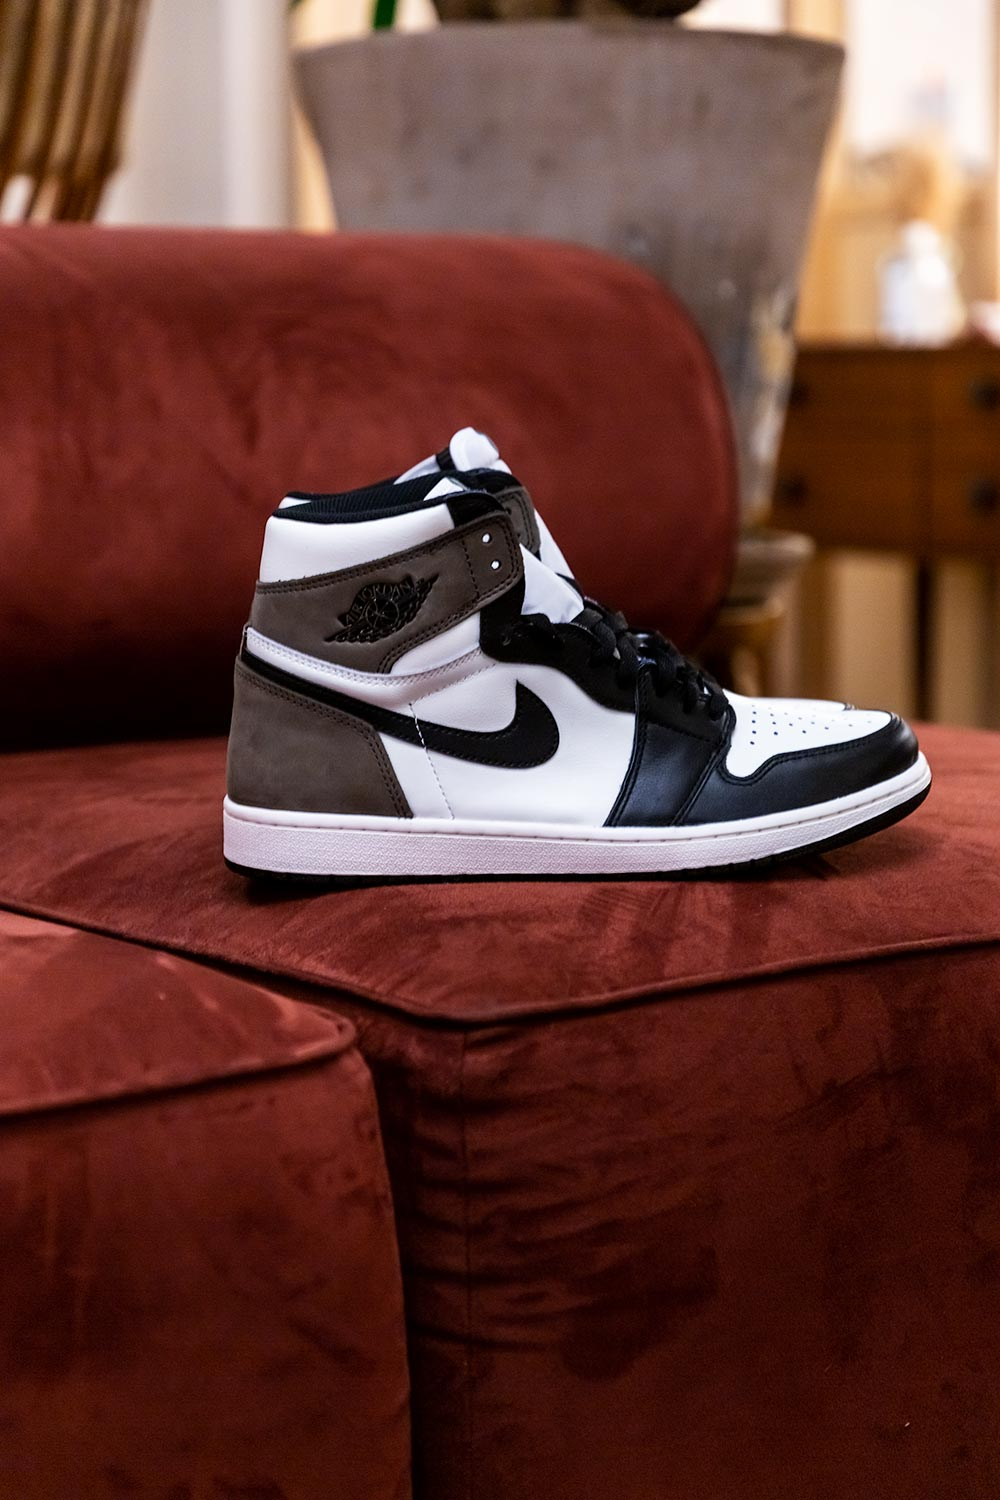 Jordan 1 Retro High Dark Mocha